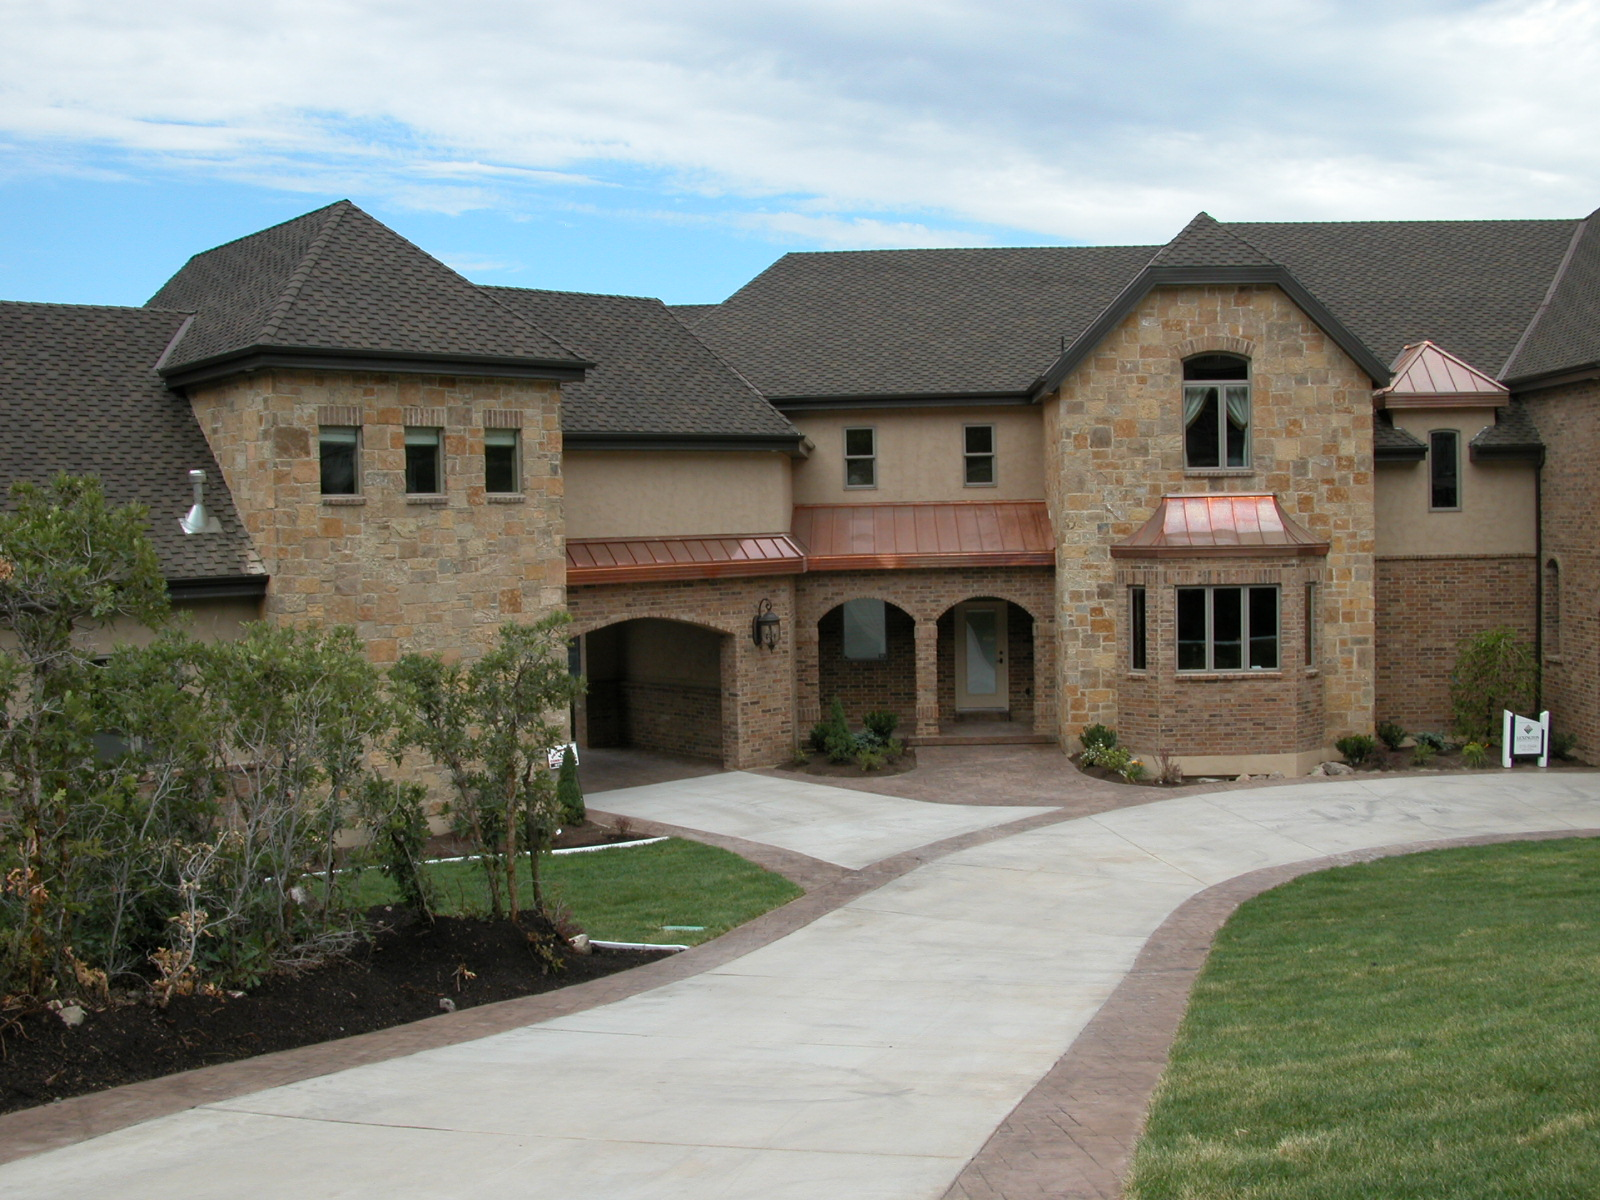 Brick Stone Combinations Homes: stucco modular homes